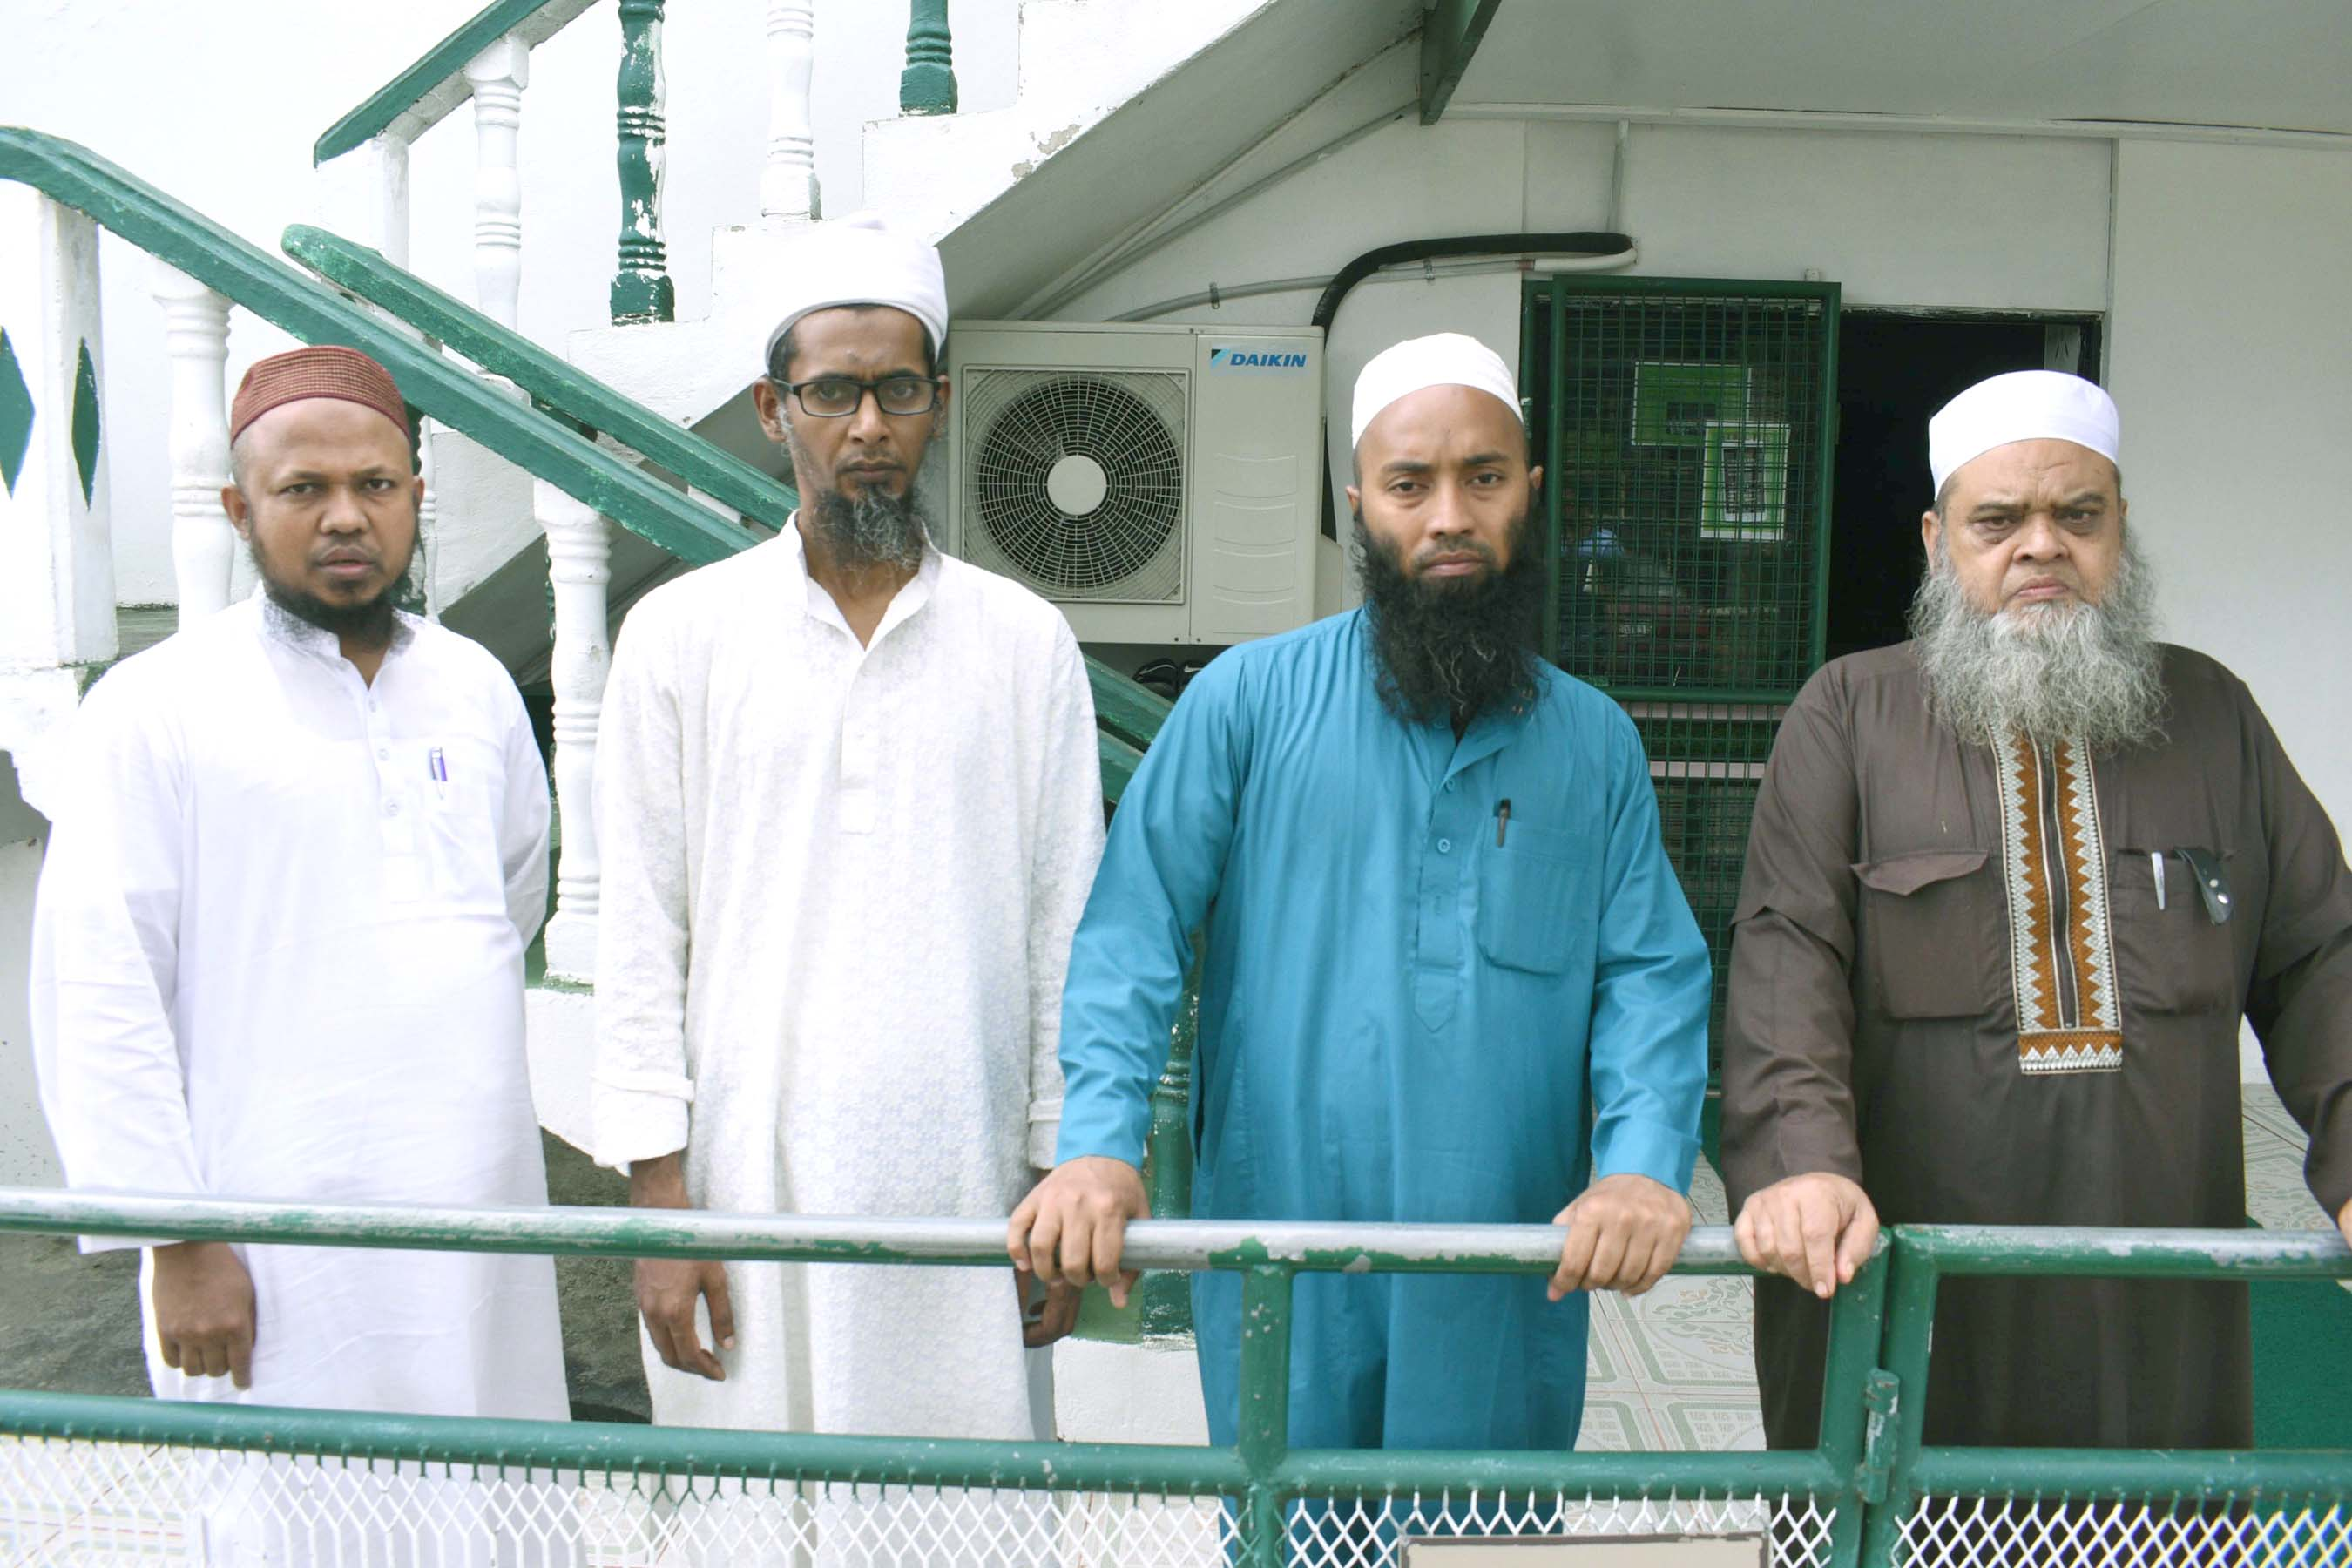 Visiting Muslim clergies from Bangaldesh missing their companion who was mowed down in front of the Mosque on Saturday 9th, September. From left, Mohammed Kamruzzaman, Hafej Nazmul Hauque, Rejaur Rahman and Haji Mohammed Idris. Photo:Jone Luvenitoga